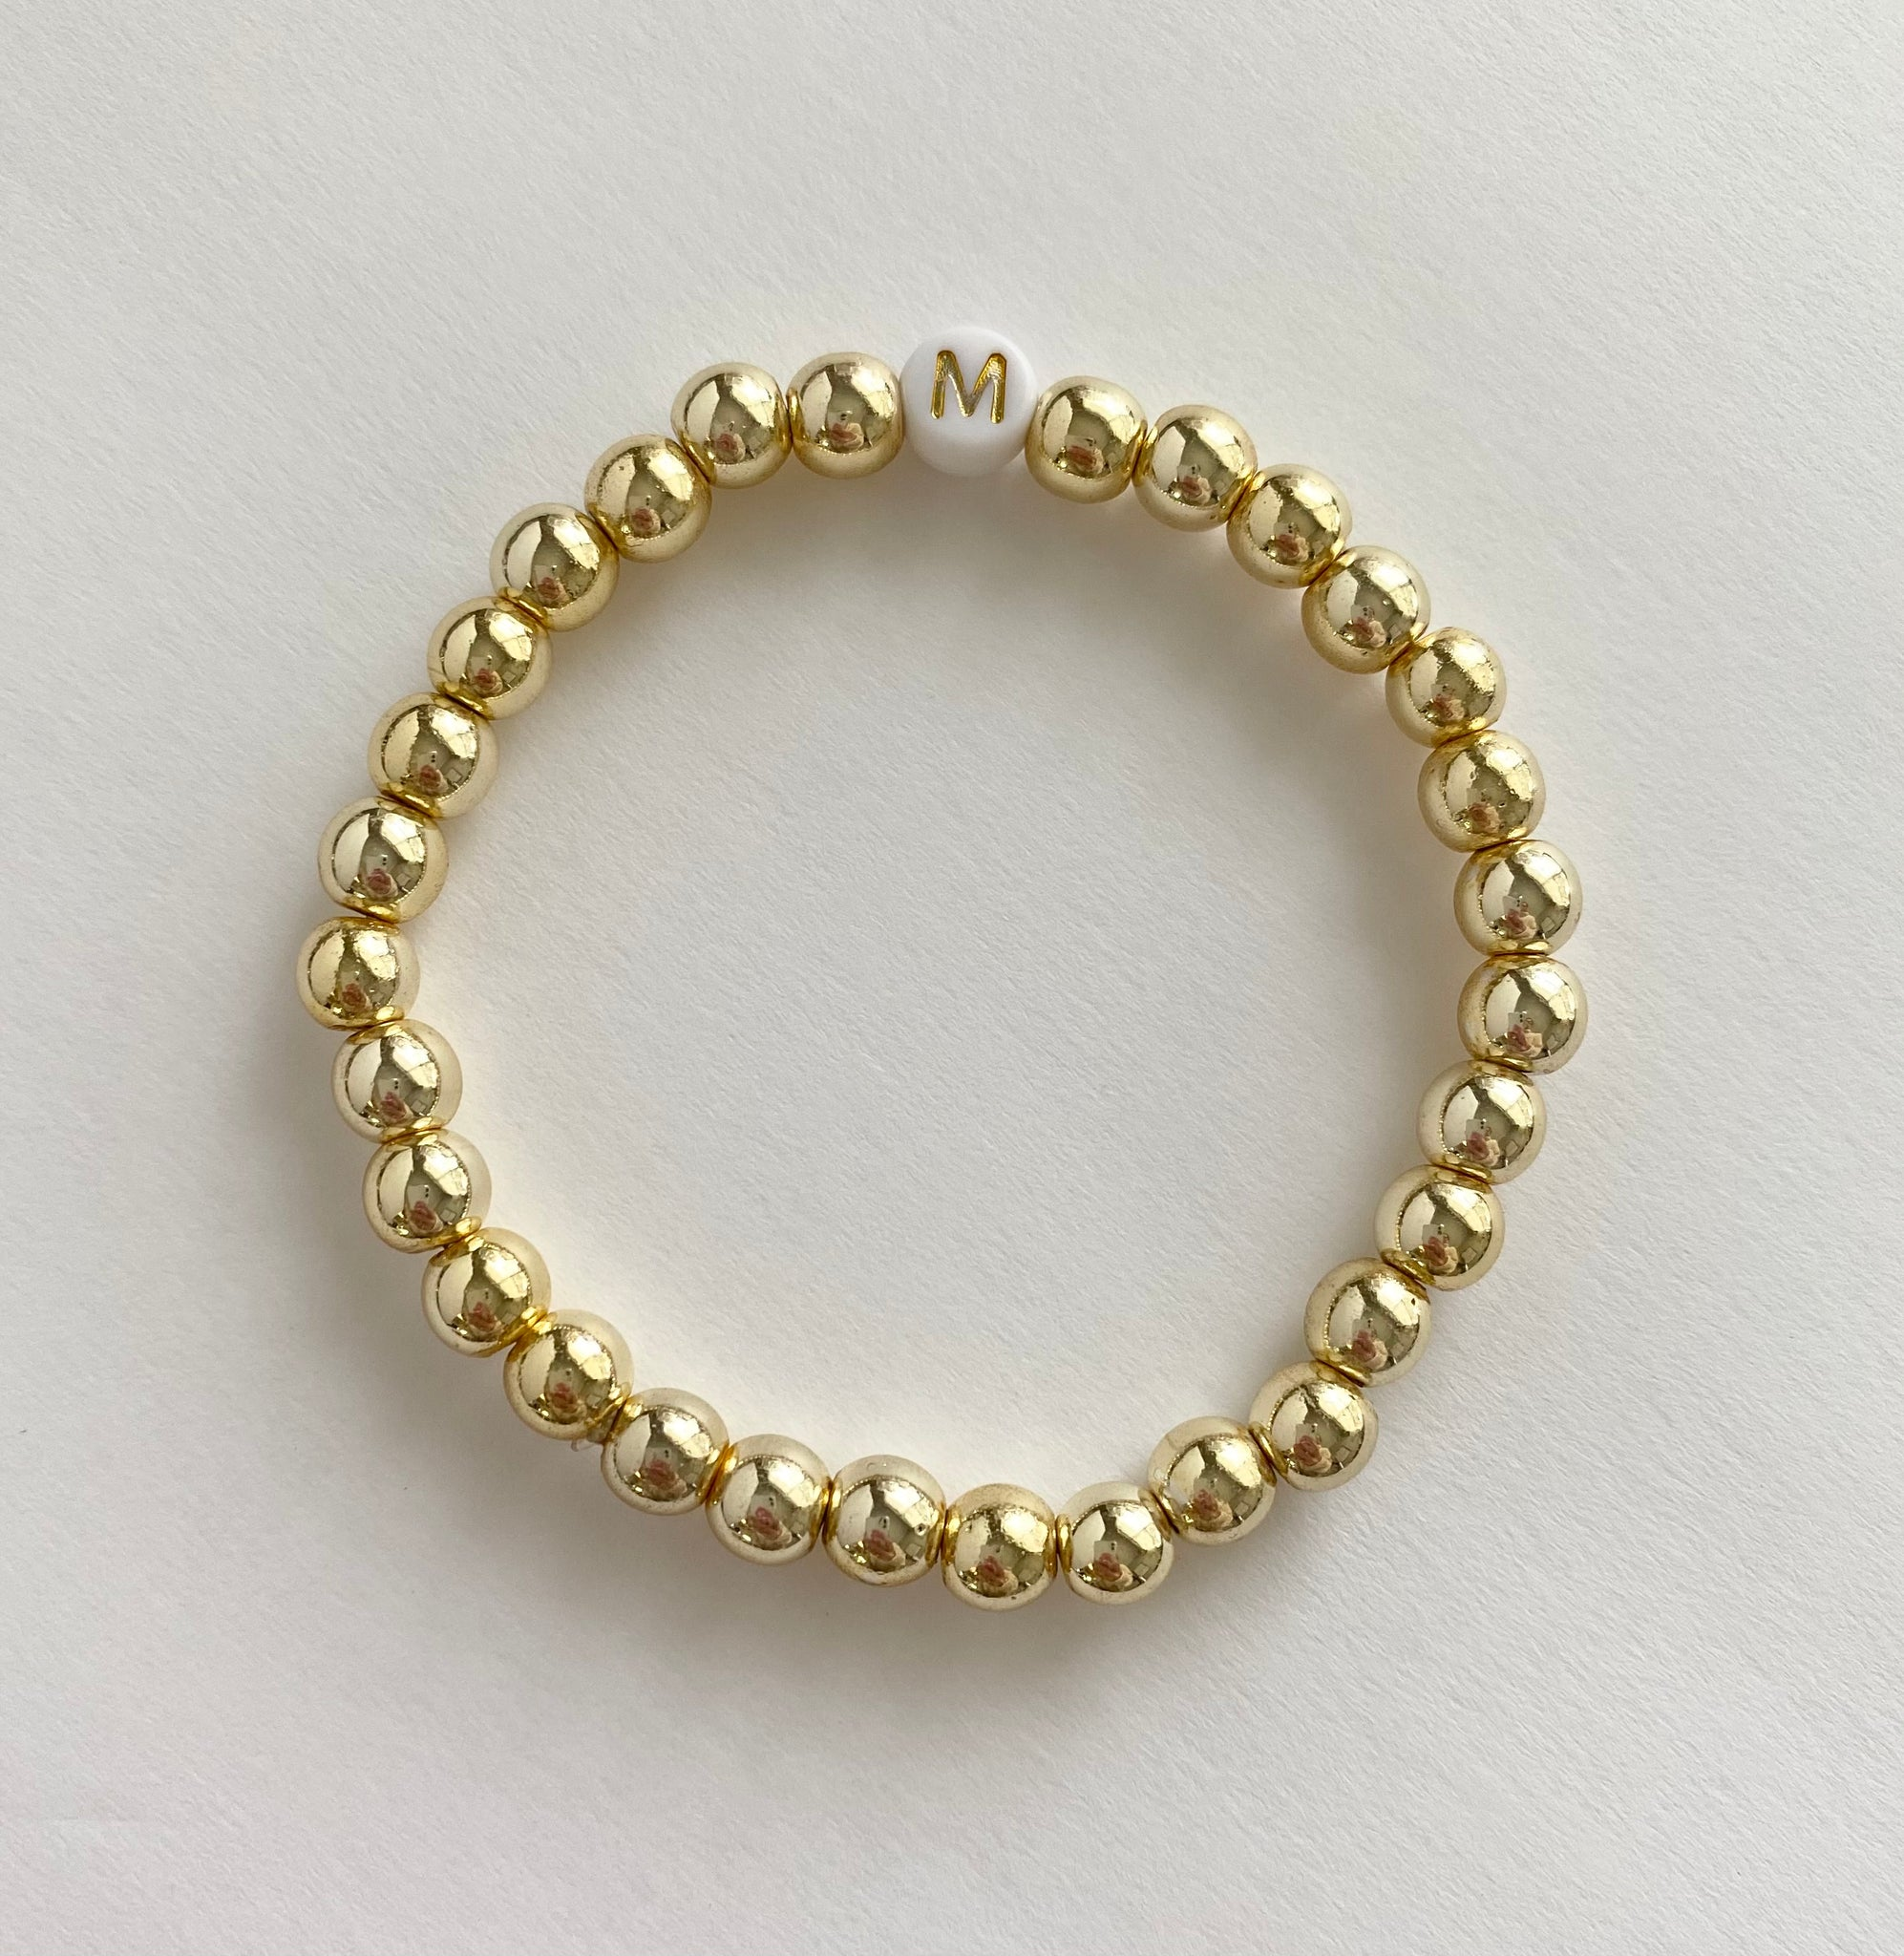 The Goldie Single Letter Personalized Bracelet